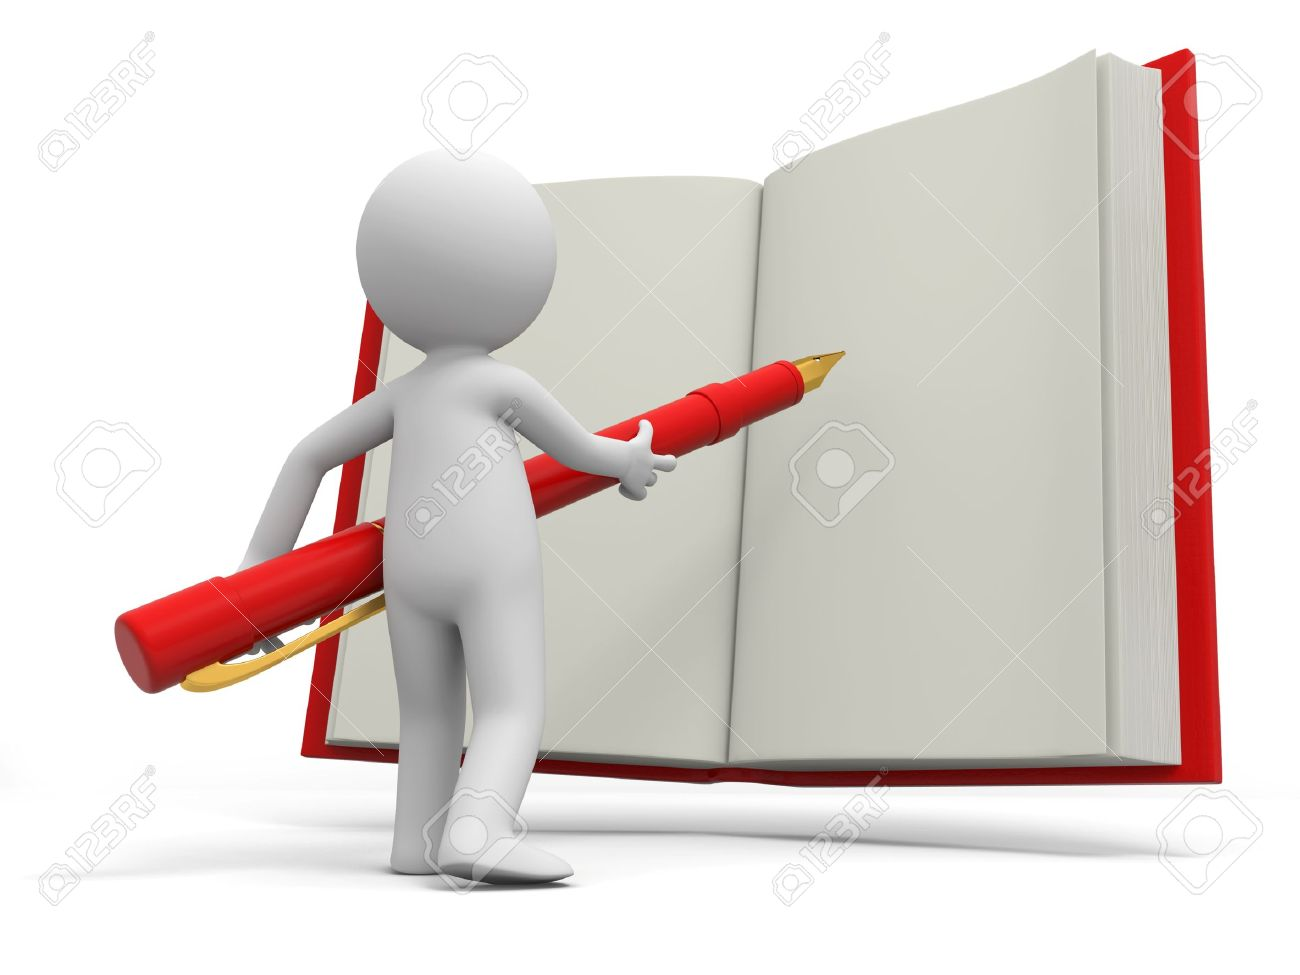 1300x975 A 3d Person Writing With A Pen On A Book Stock Photo, Picture